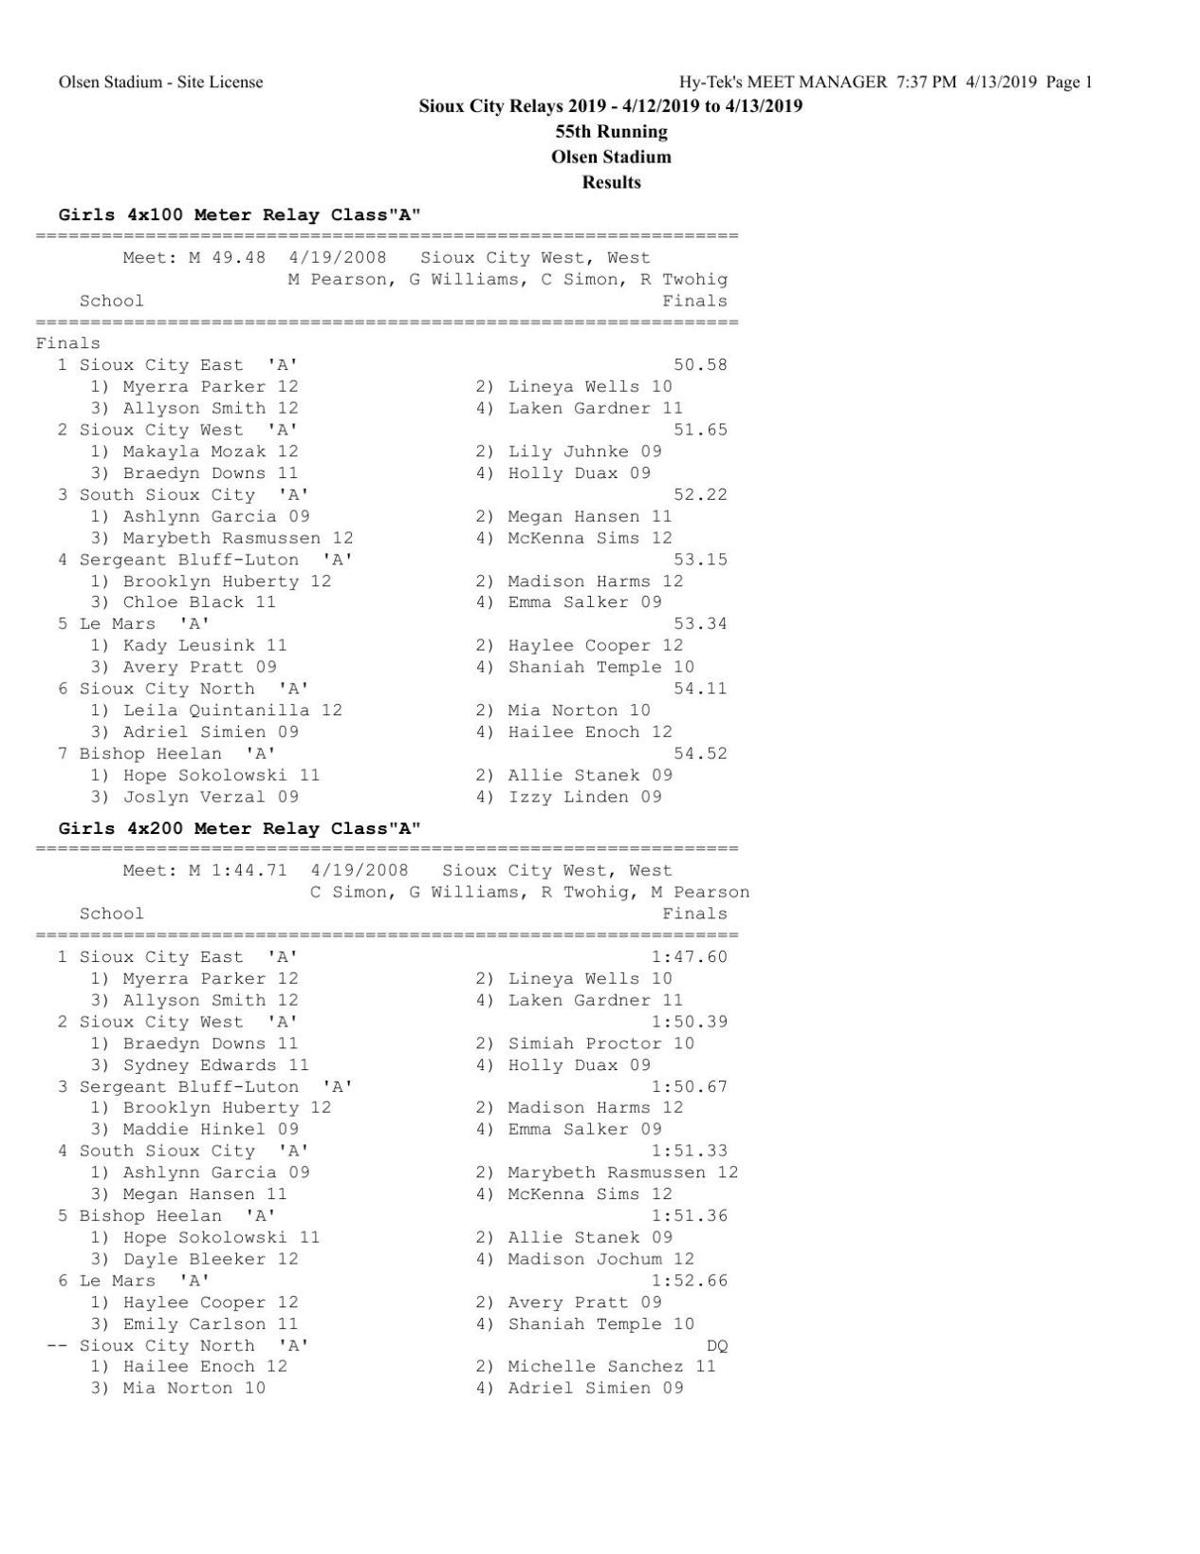 2019 Sioux City Relays results